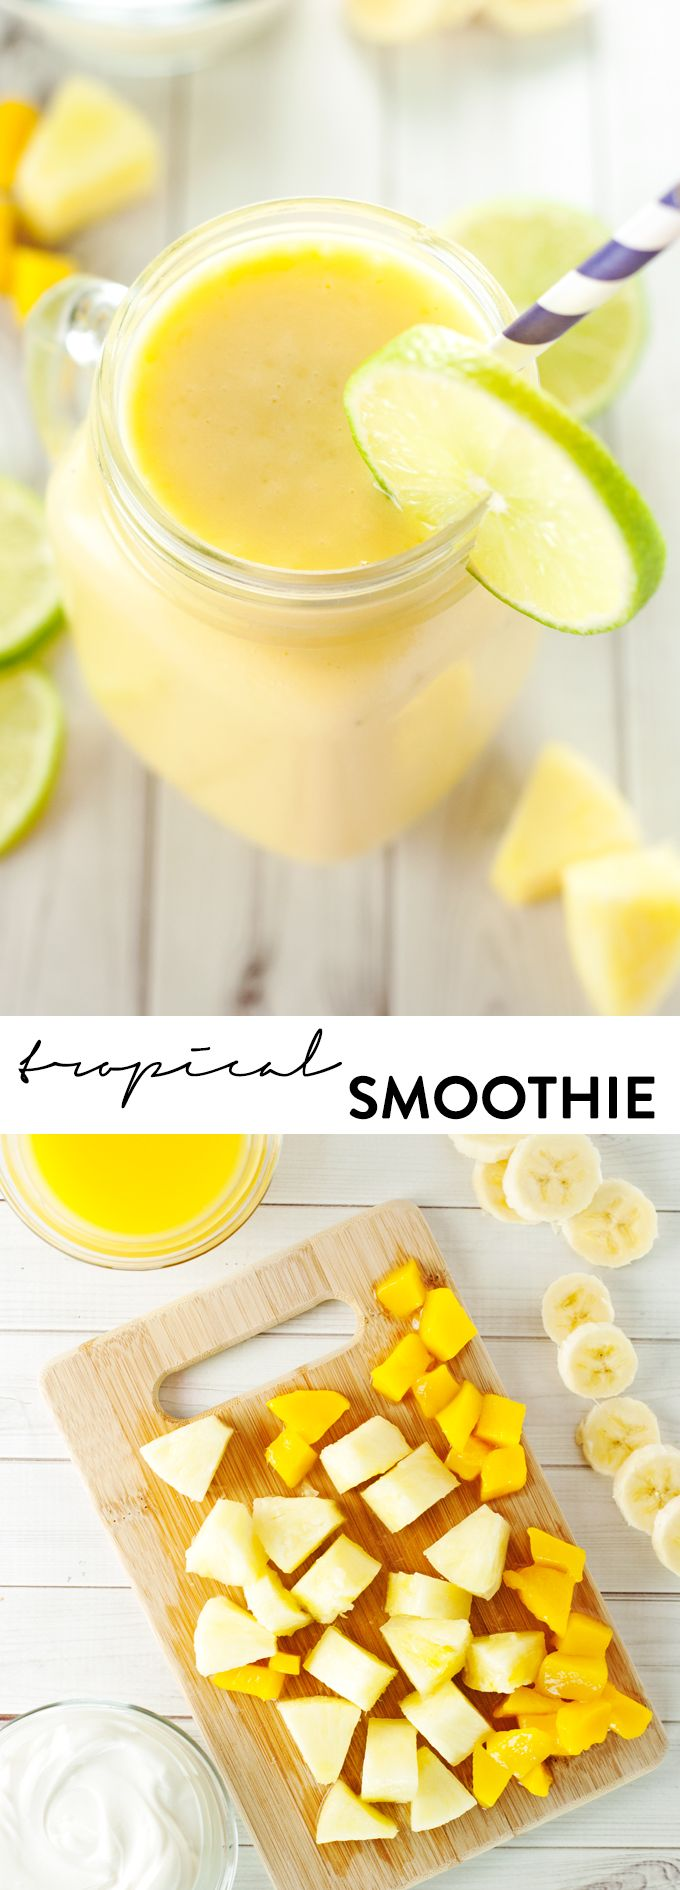 Tropical Smoothie Recipe - via @asimplepantry. Bring on the summertime flavors no matter the season with this festive smoothie using Del Monte Diced Mangos.